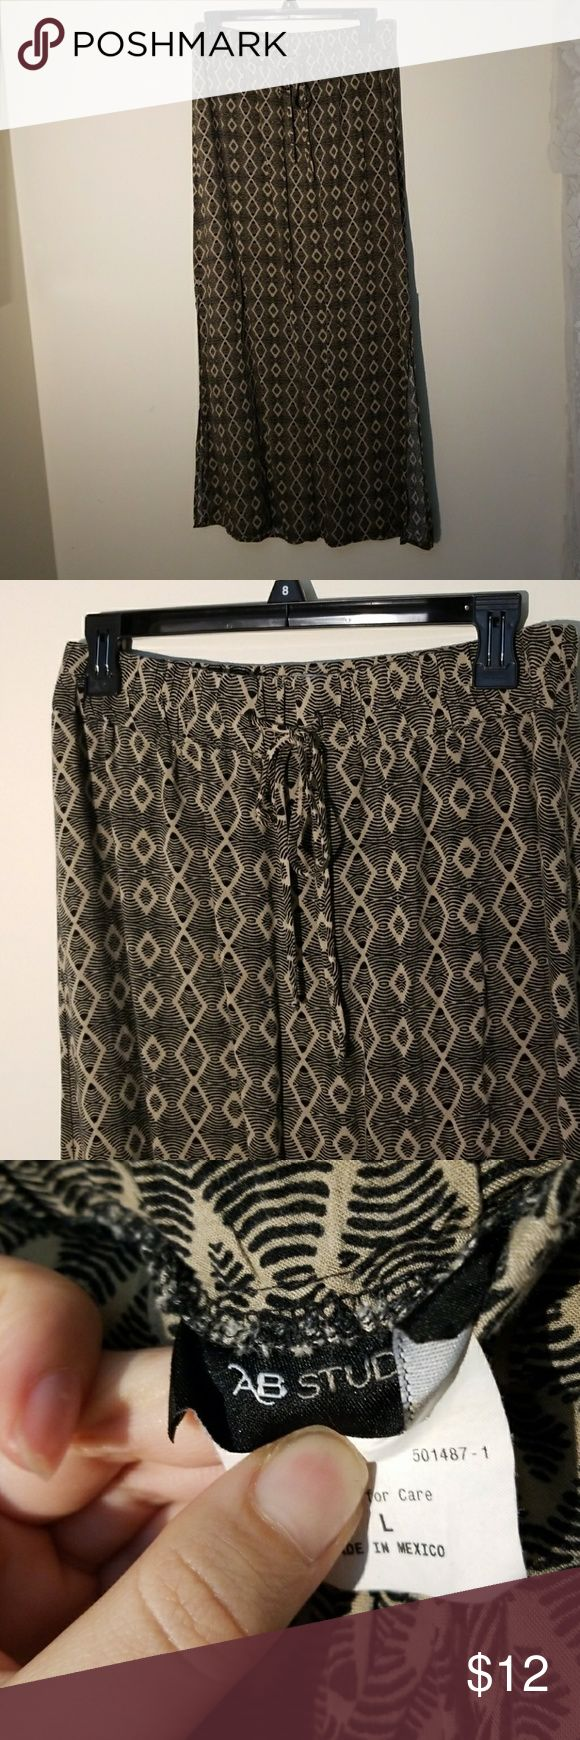 Boho Maxi Skirt Gorgeous and comfy maxi skirt. Has slit on both sides that come to just below the knee. Has a stretchy waist band and thin tie closure. Fits large to medium. Just a little short for me. AB Studio Skirts Maxi